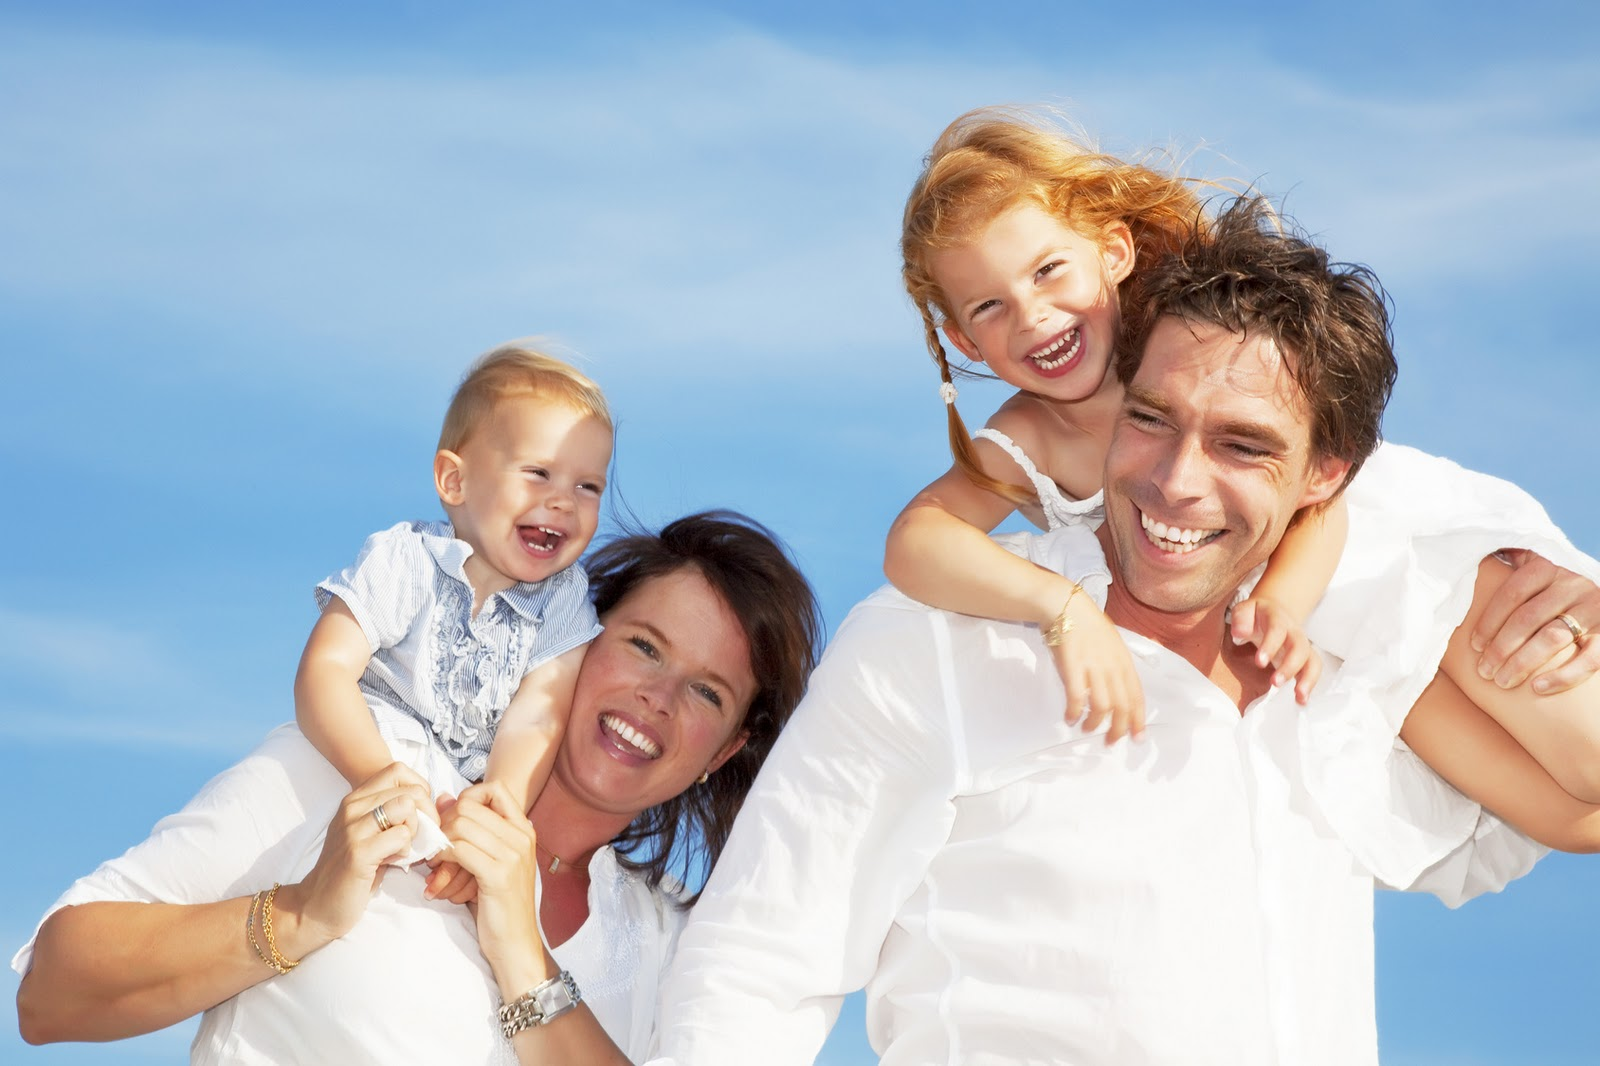 American Family Property Insurance